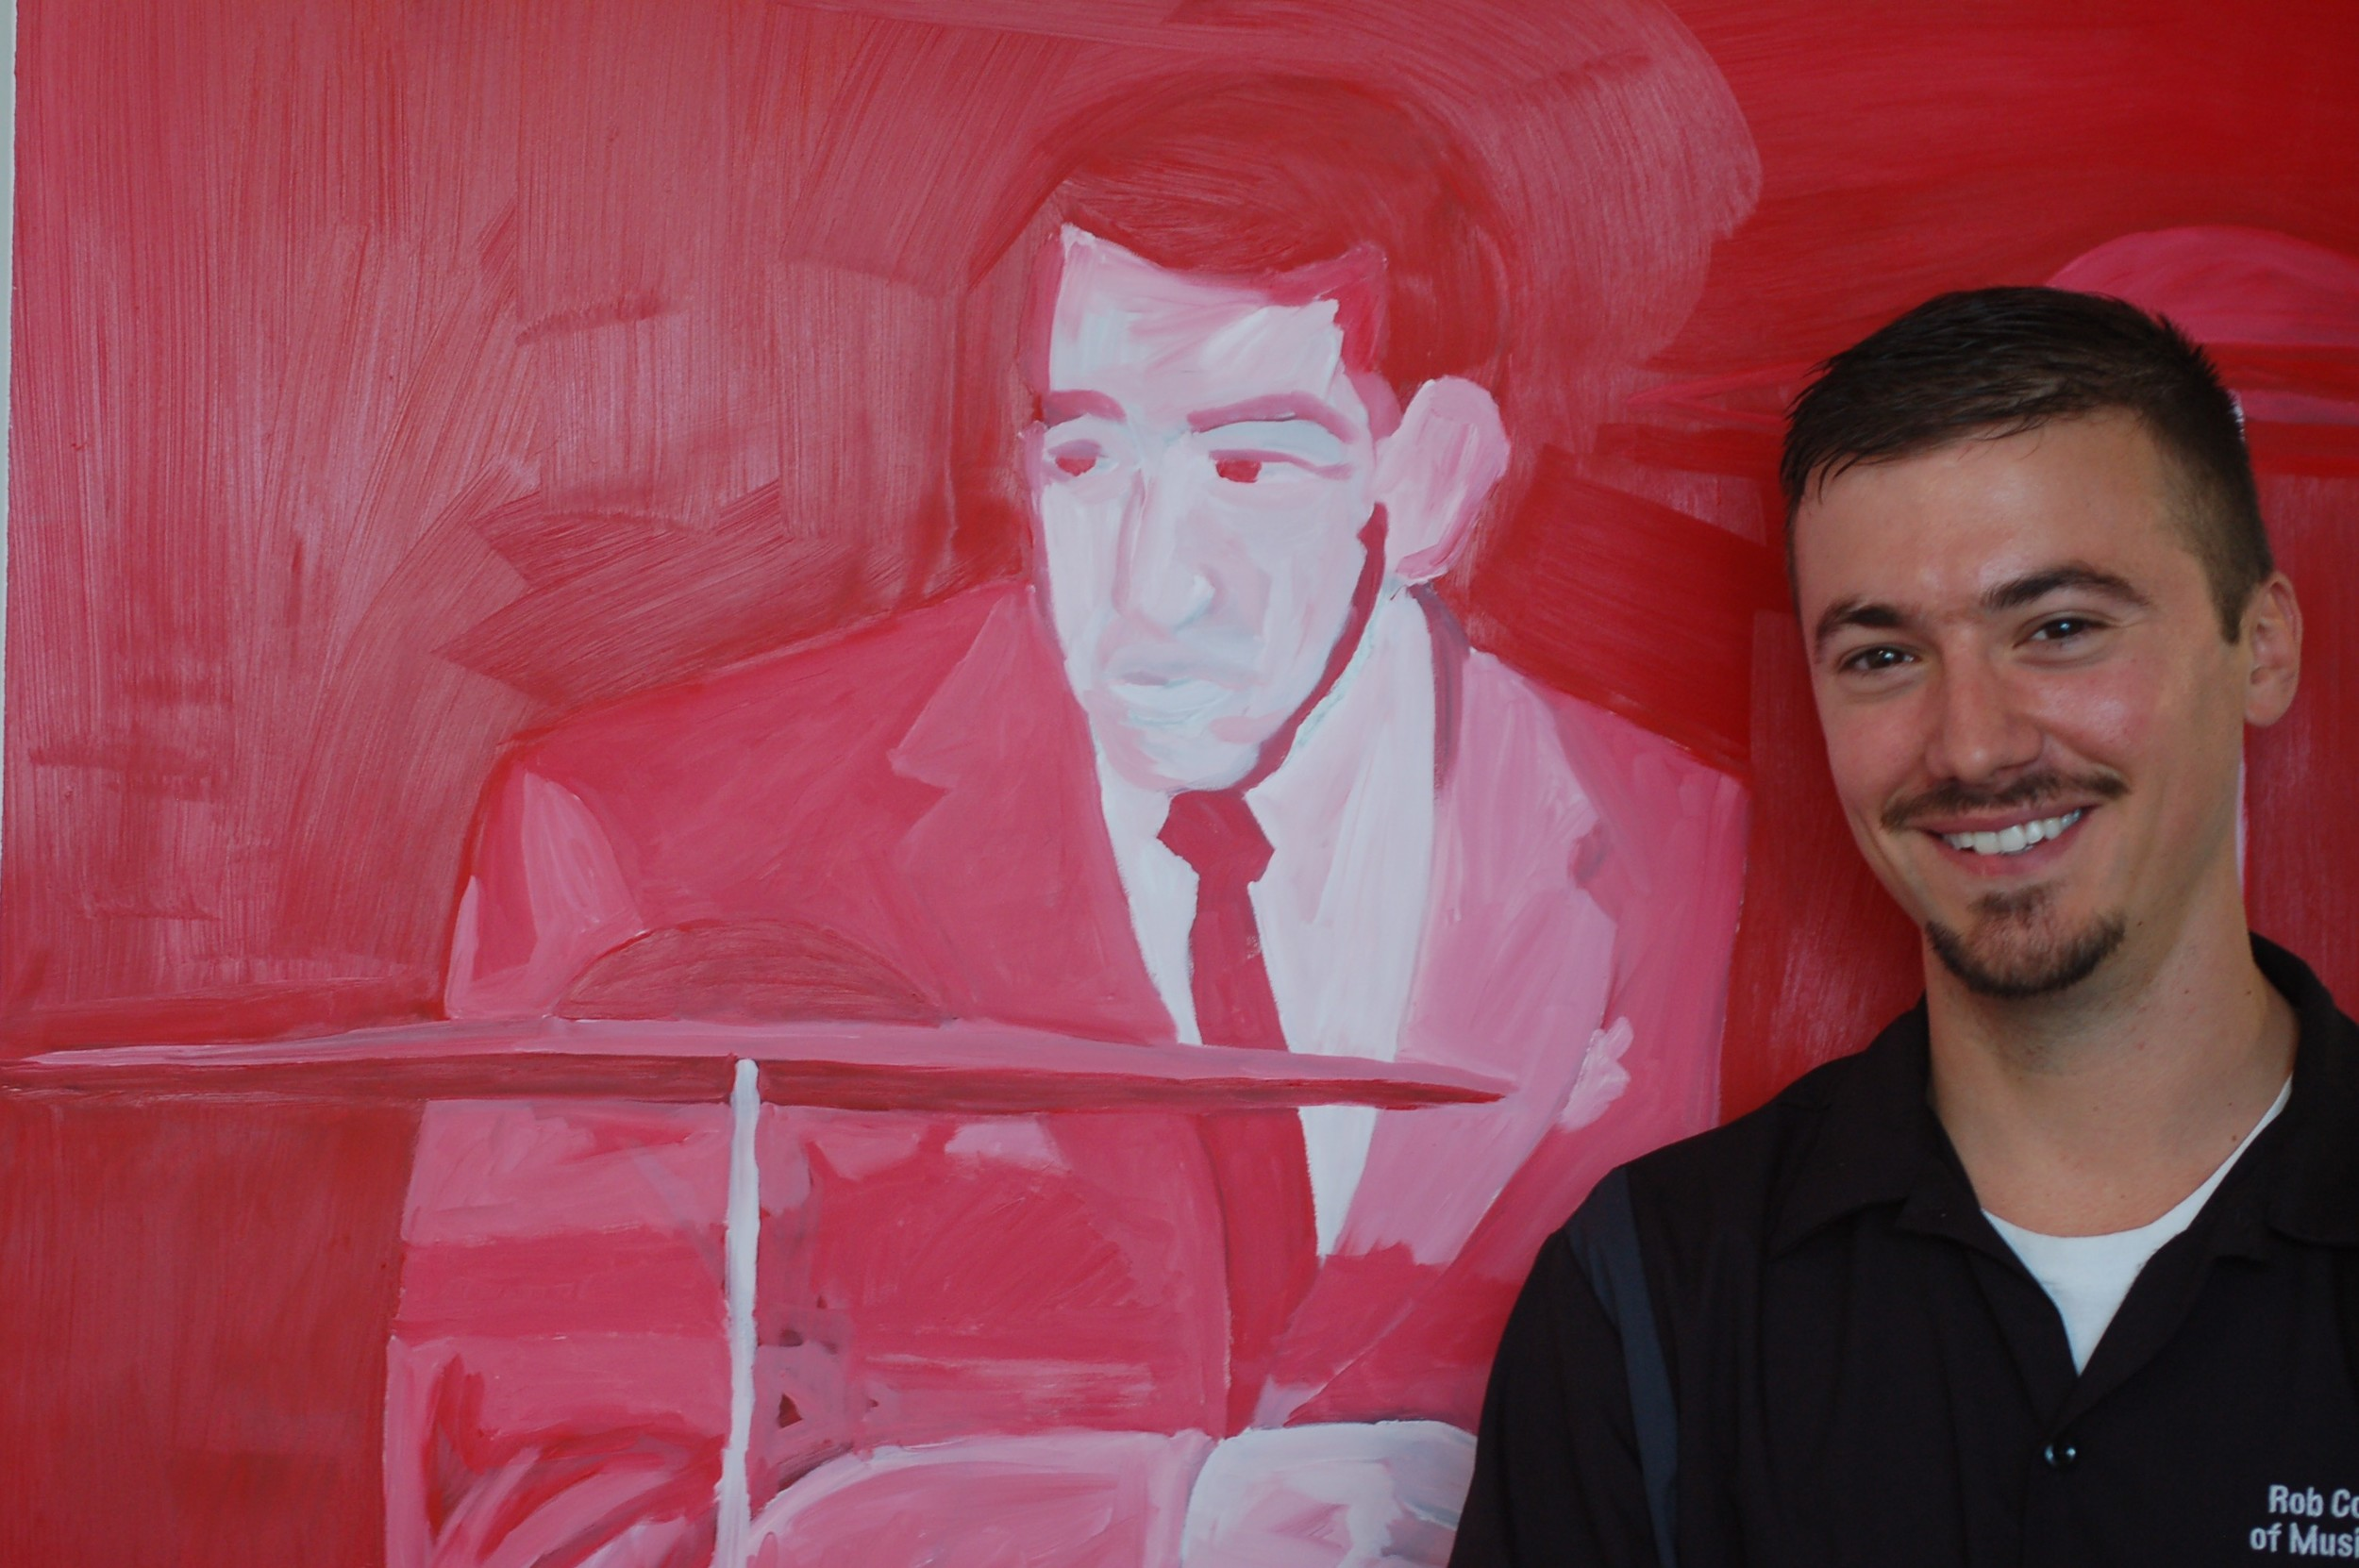 Rob Coyne, of Rob Coyne's School of Music Education, with Matt Charros' painting of legendary Jazz drummer (and Coyne's hero) Buddy Rich.